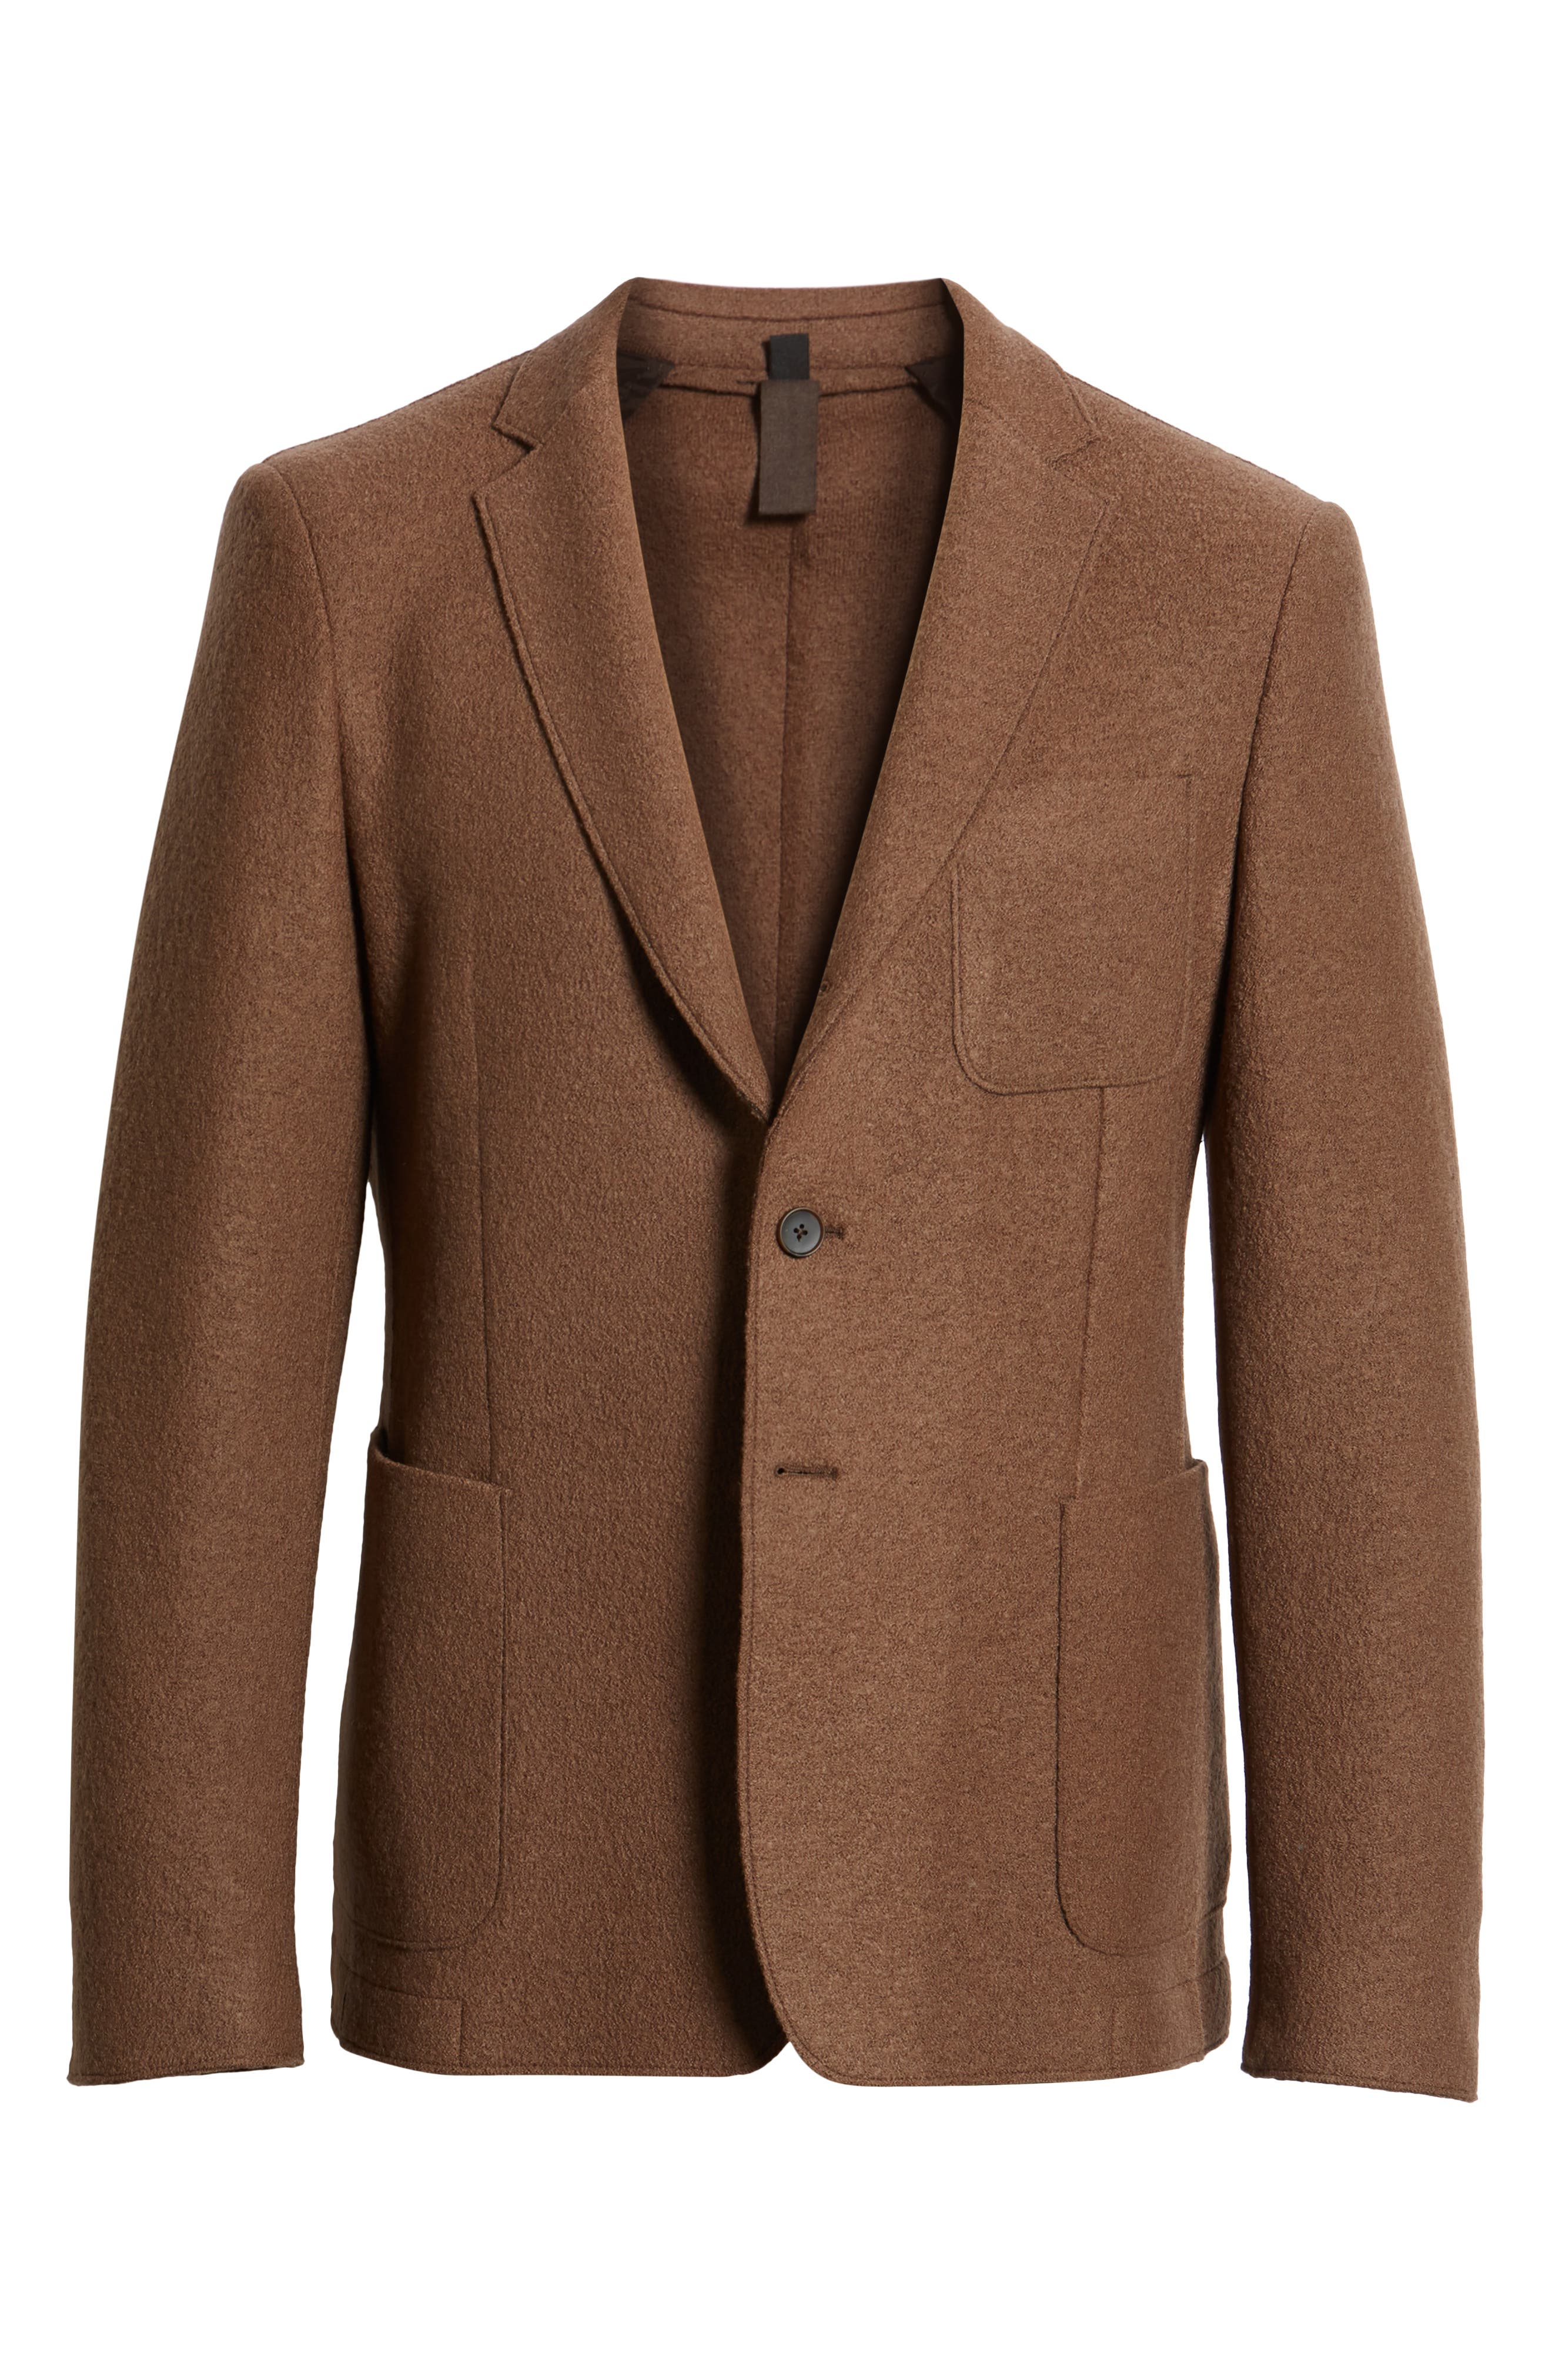 Nixan Trim Fit Wool Sport Coat,                             Alternate thumbnail 5, color,                             LIGHT/ PASTEL BROWN